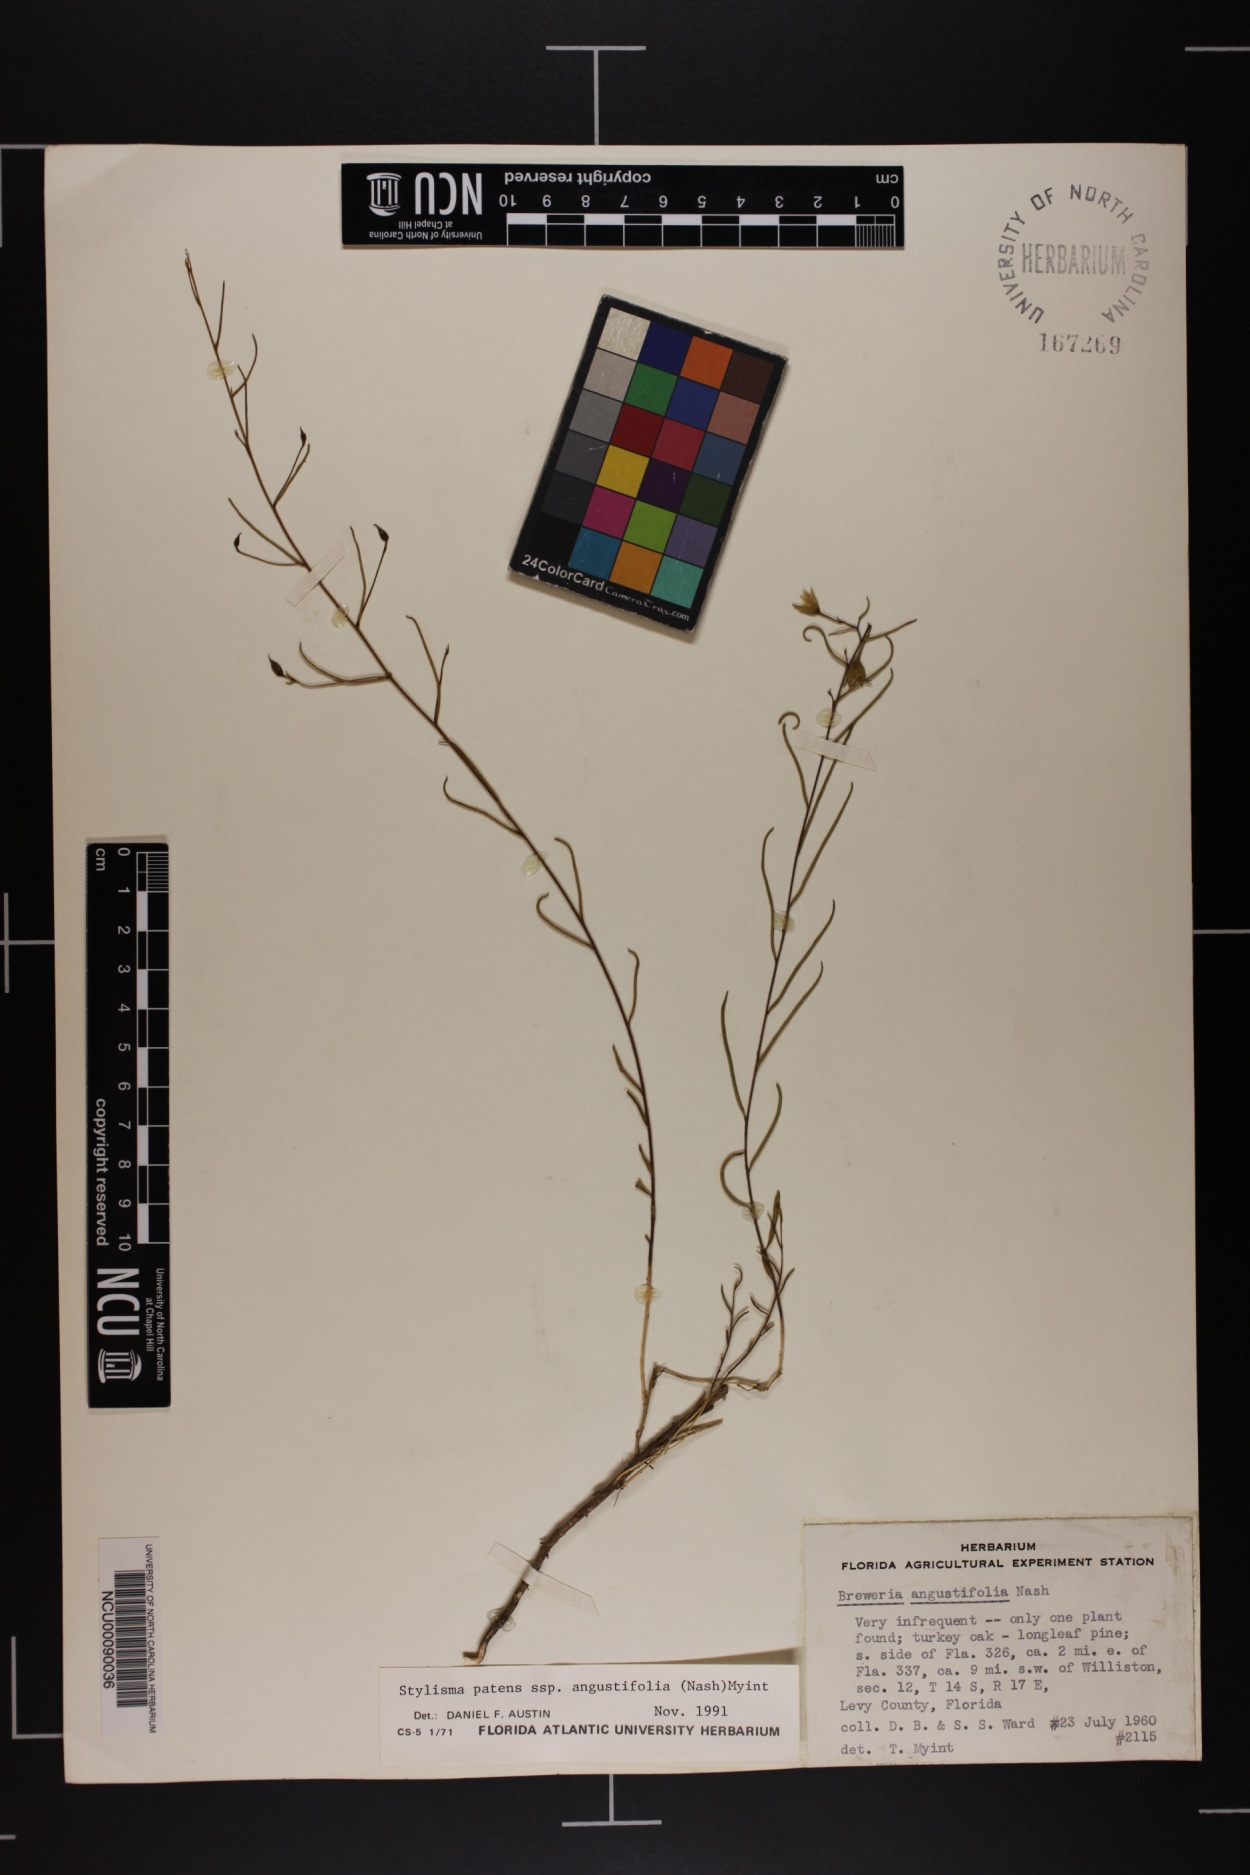 Stylisma patens subsp. angustifolia image